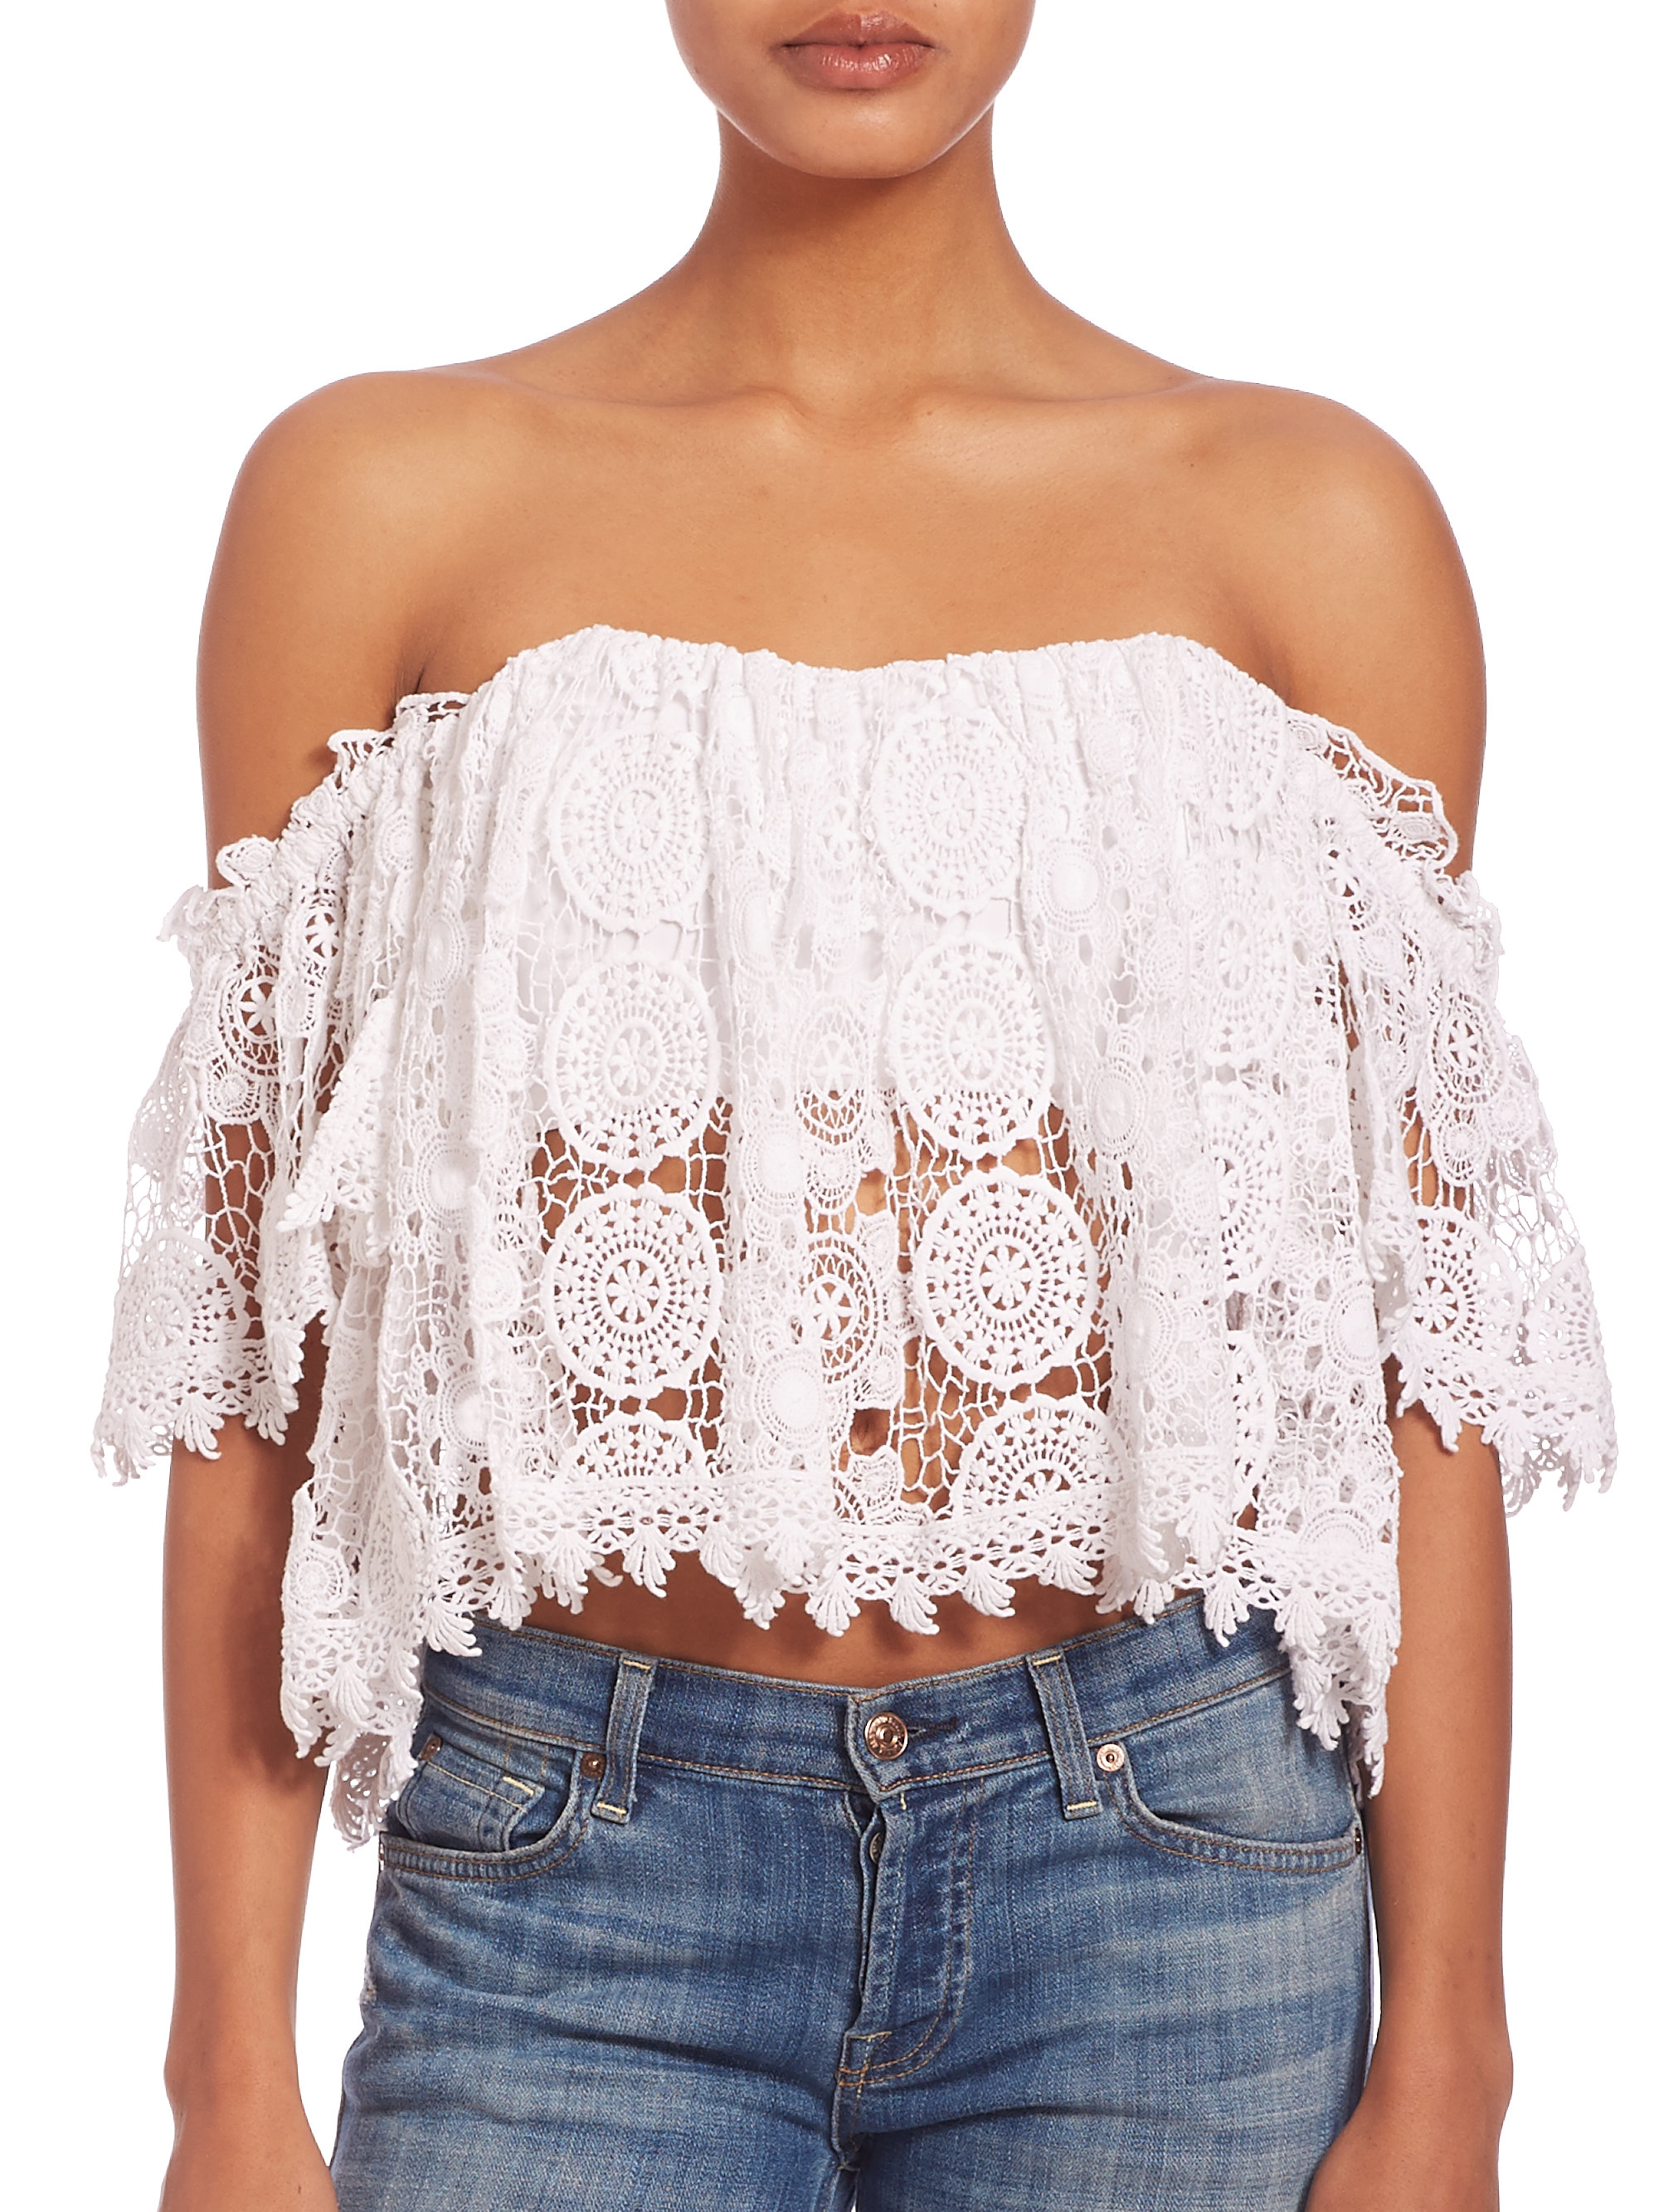 5262ab2c22cf0a Lyst - Tularosa Amelia Lace Off-the-shoulder Cropped Top in White